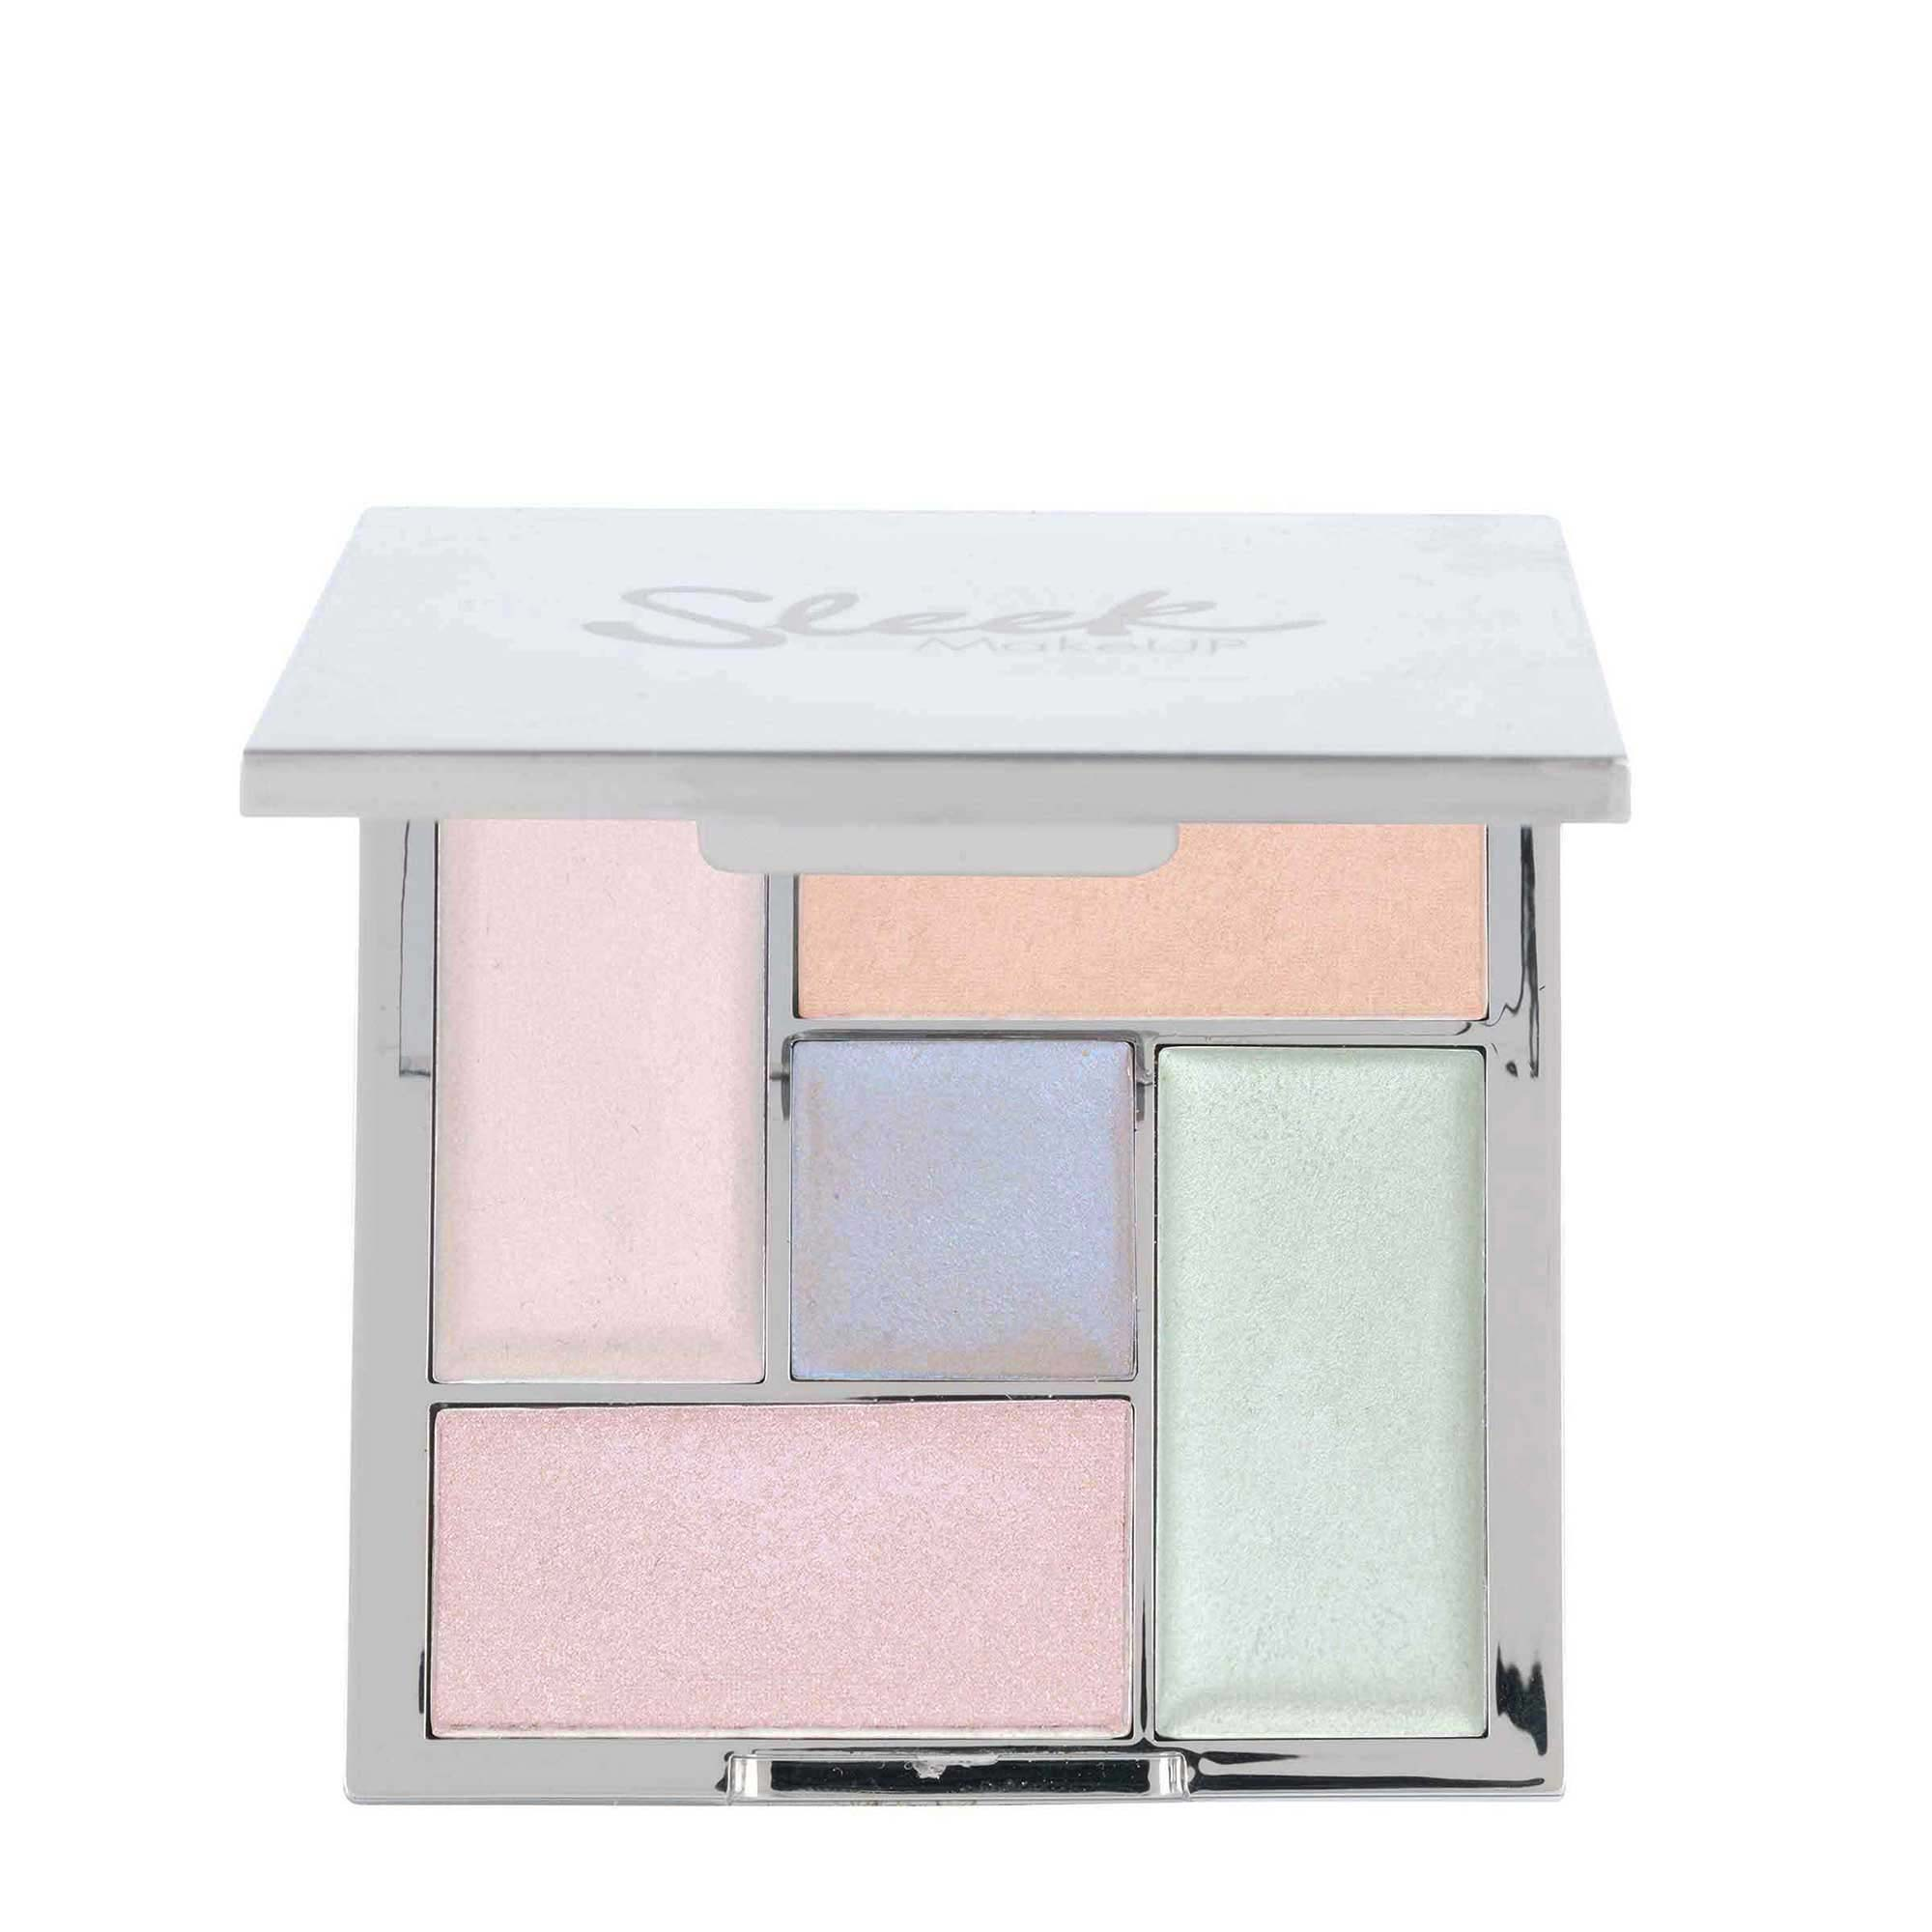 Highlighter Palette Distored Dreams Sleek Makeup